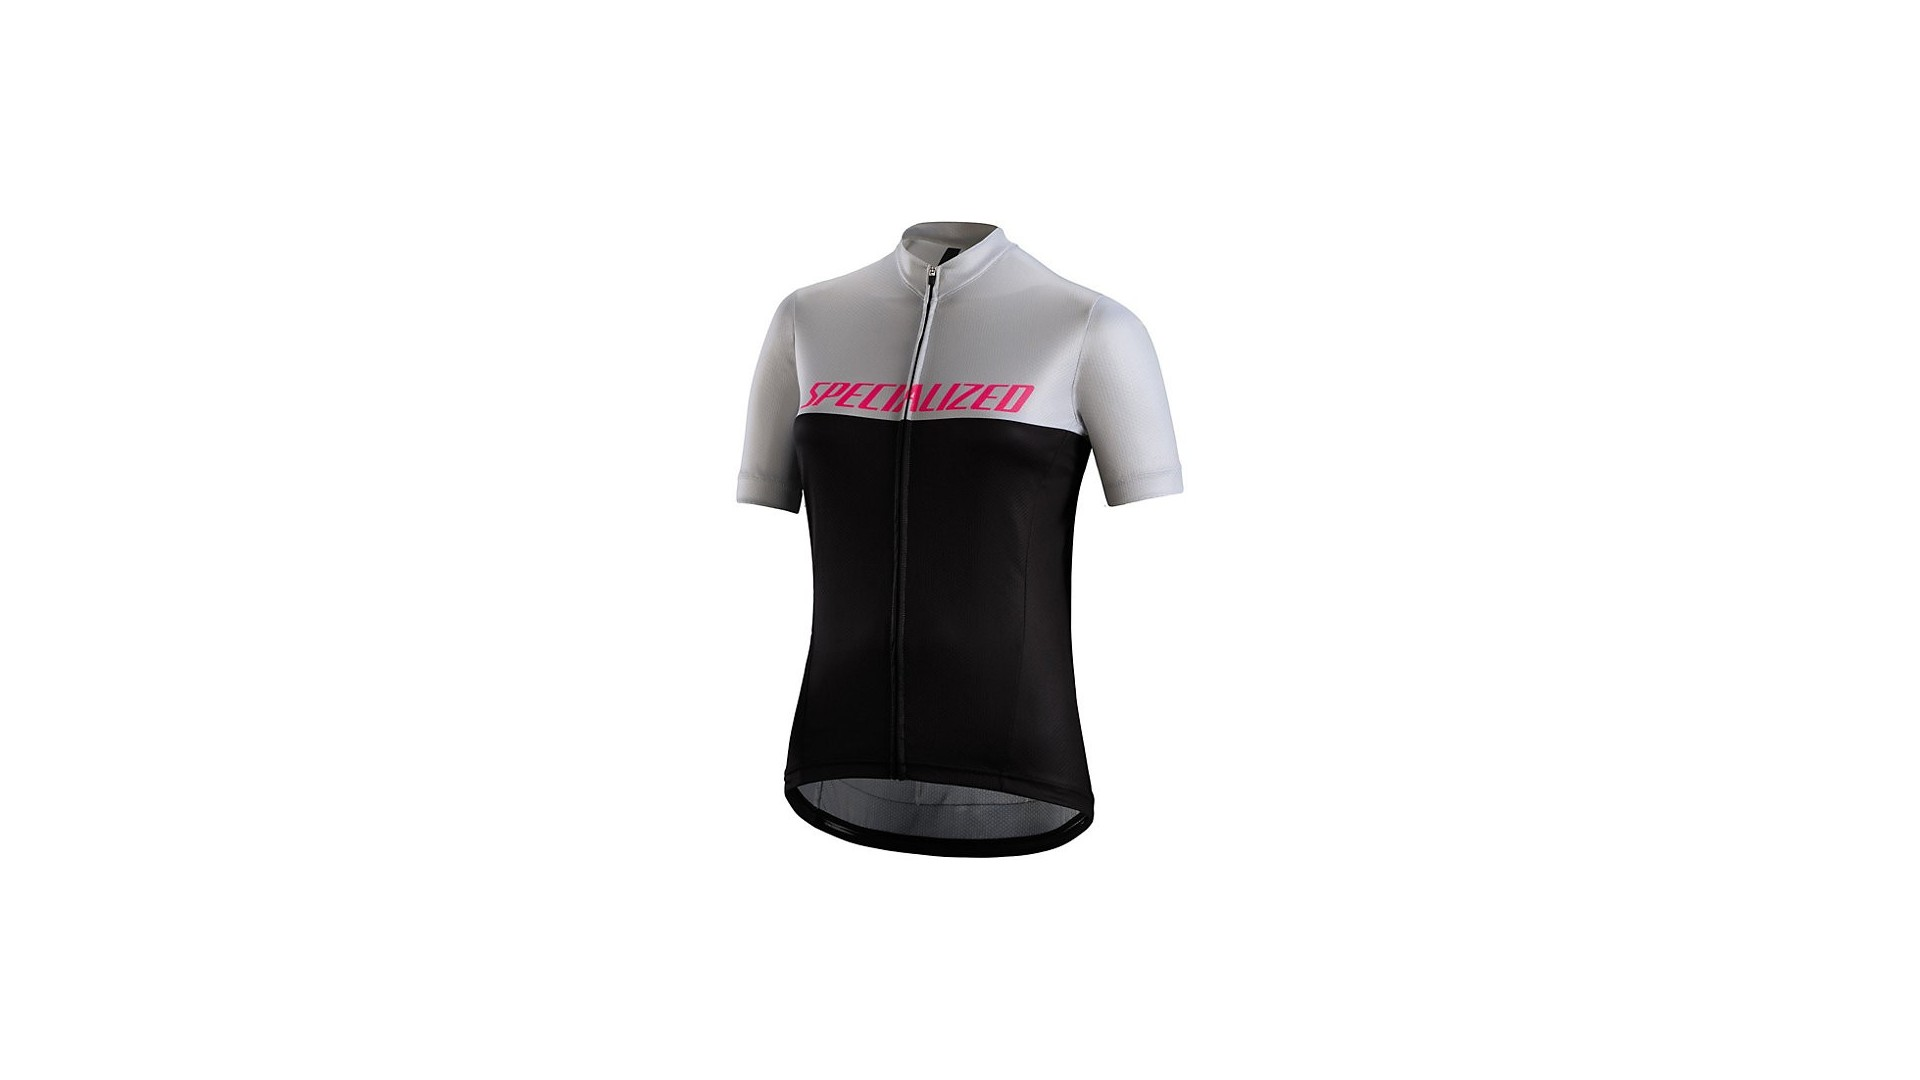 Rbx Comp Logo Team Maillot Specialized Mujer Negro/Gris Claro/Rosa Neon 1 IBKBike.es